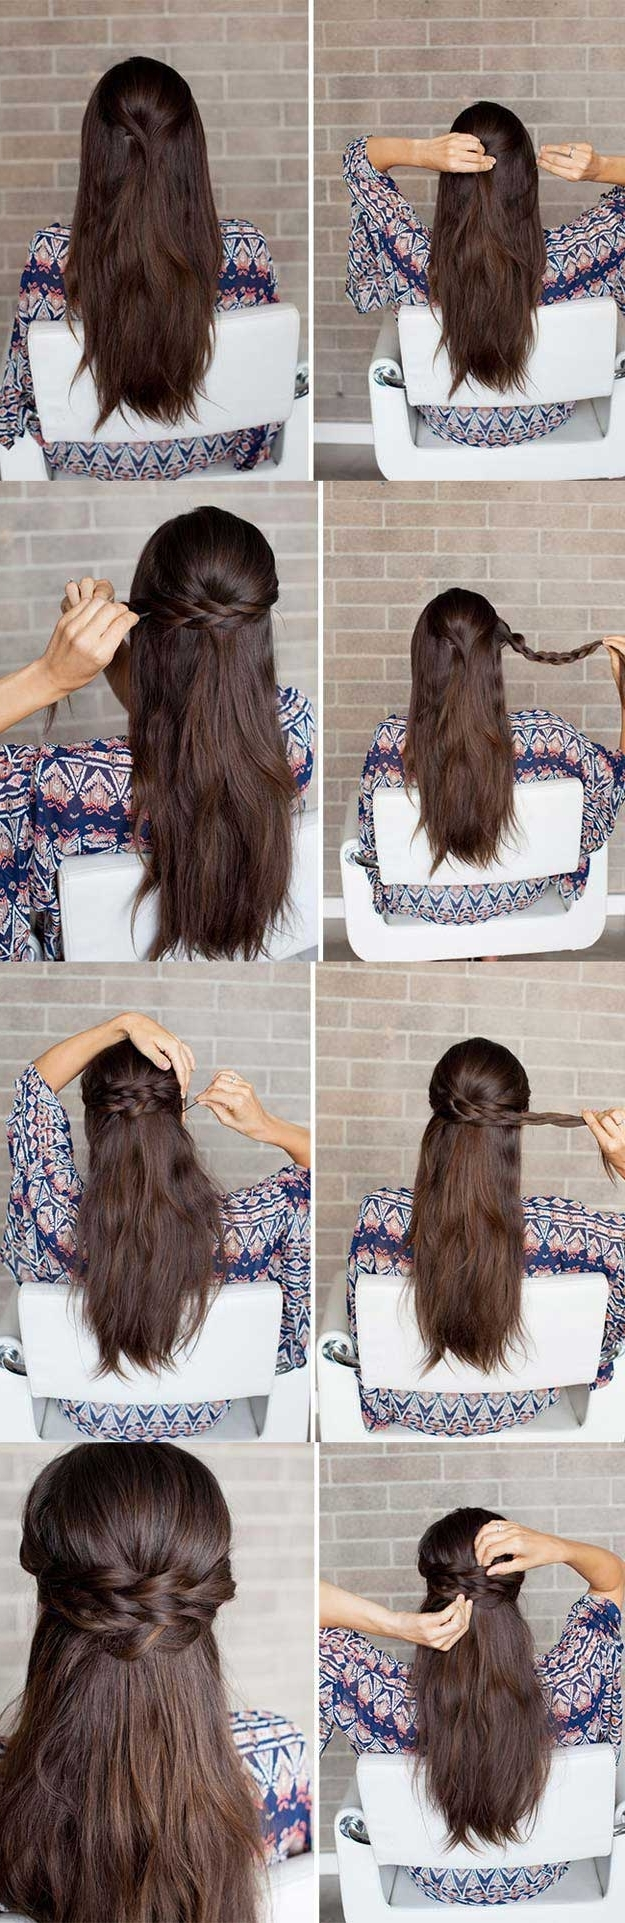 31 Amazing Half Up Half Down Hairstyles For Long Hair The 40+ Amazing Half Up Half Down Formal Hairstyles For Medium Hair